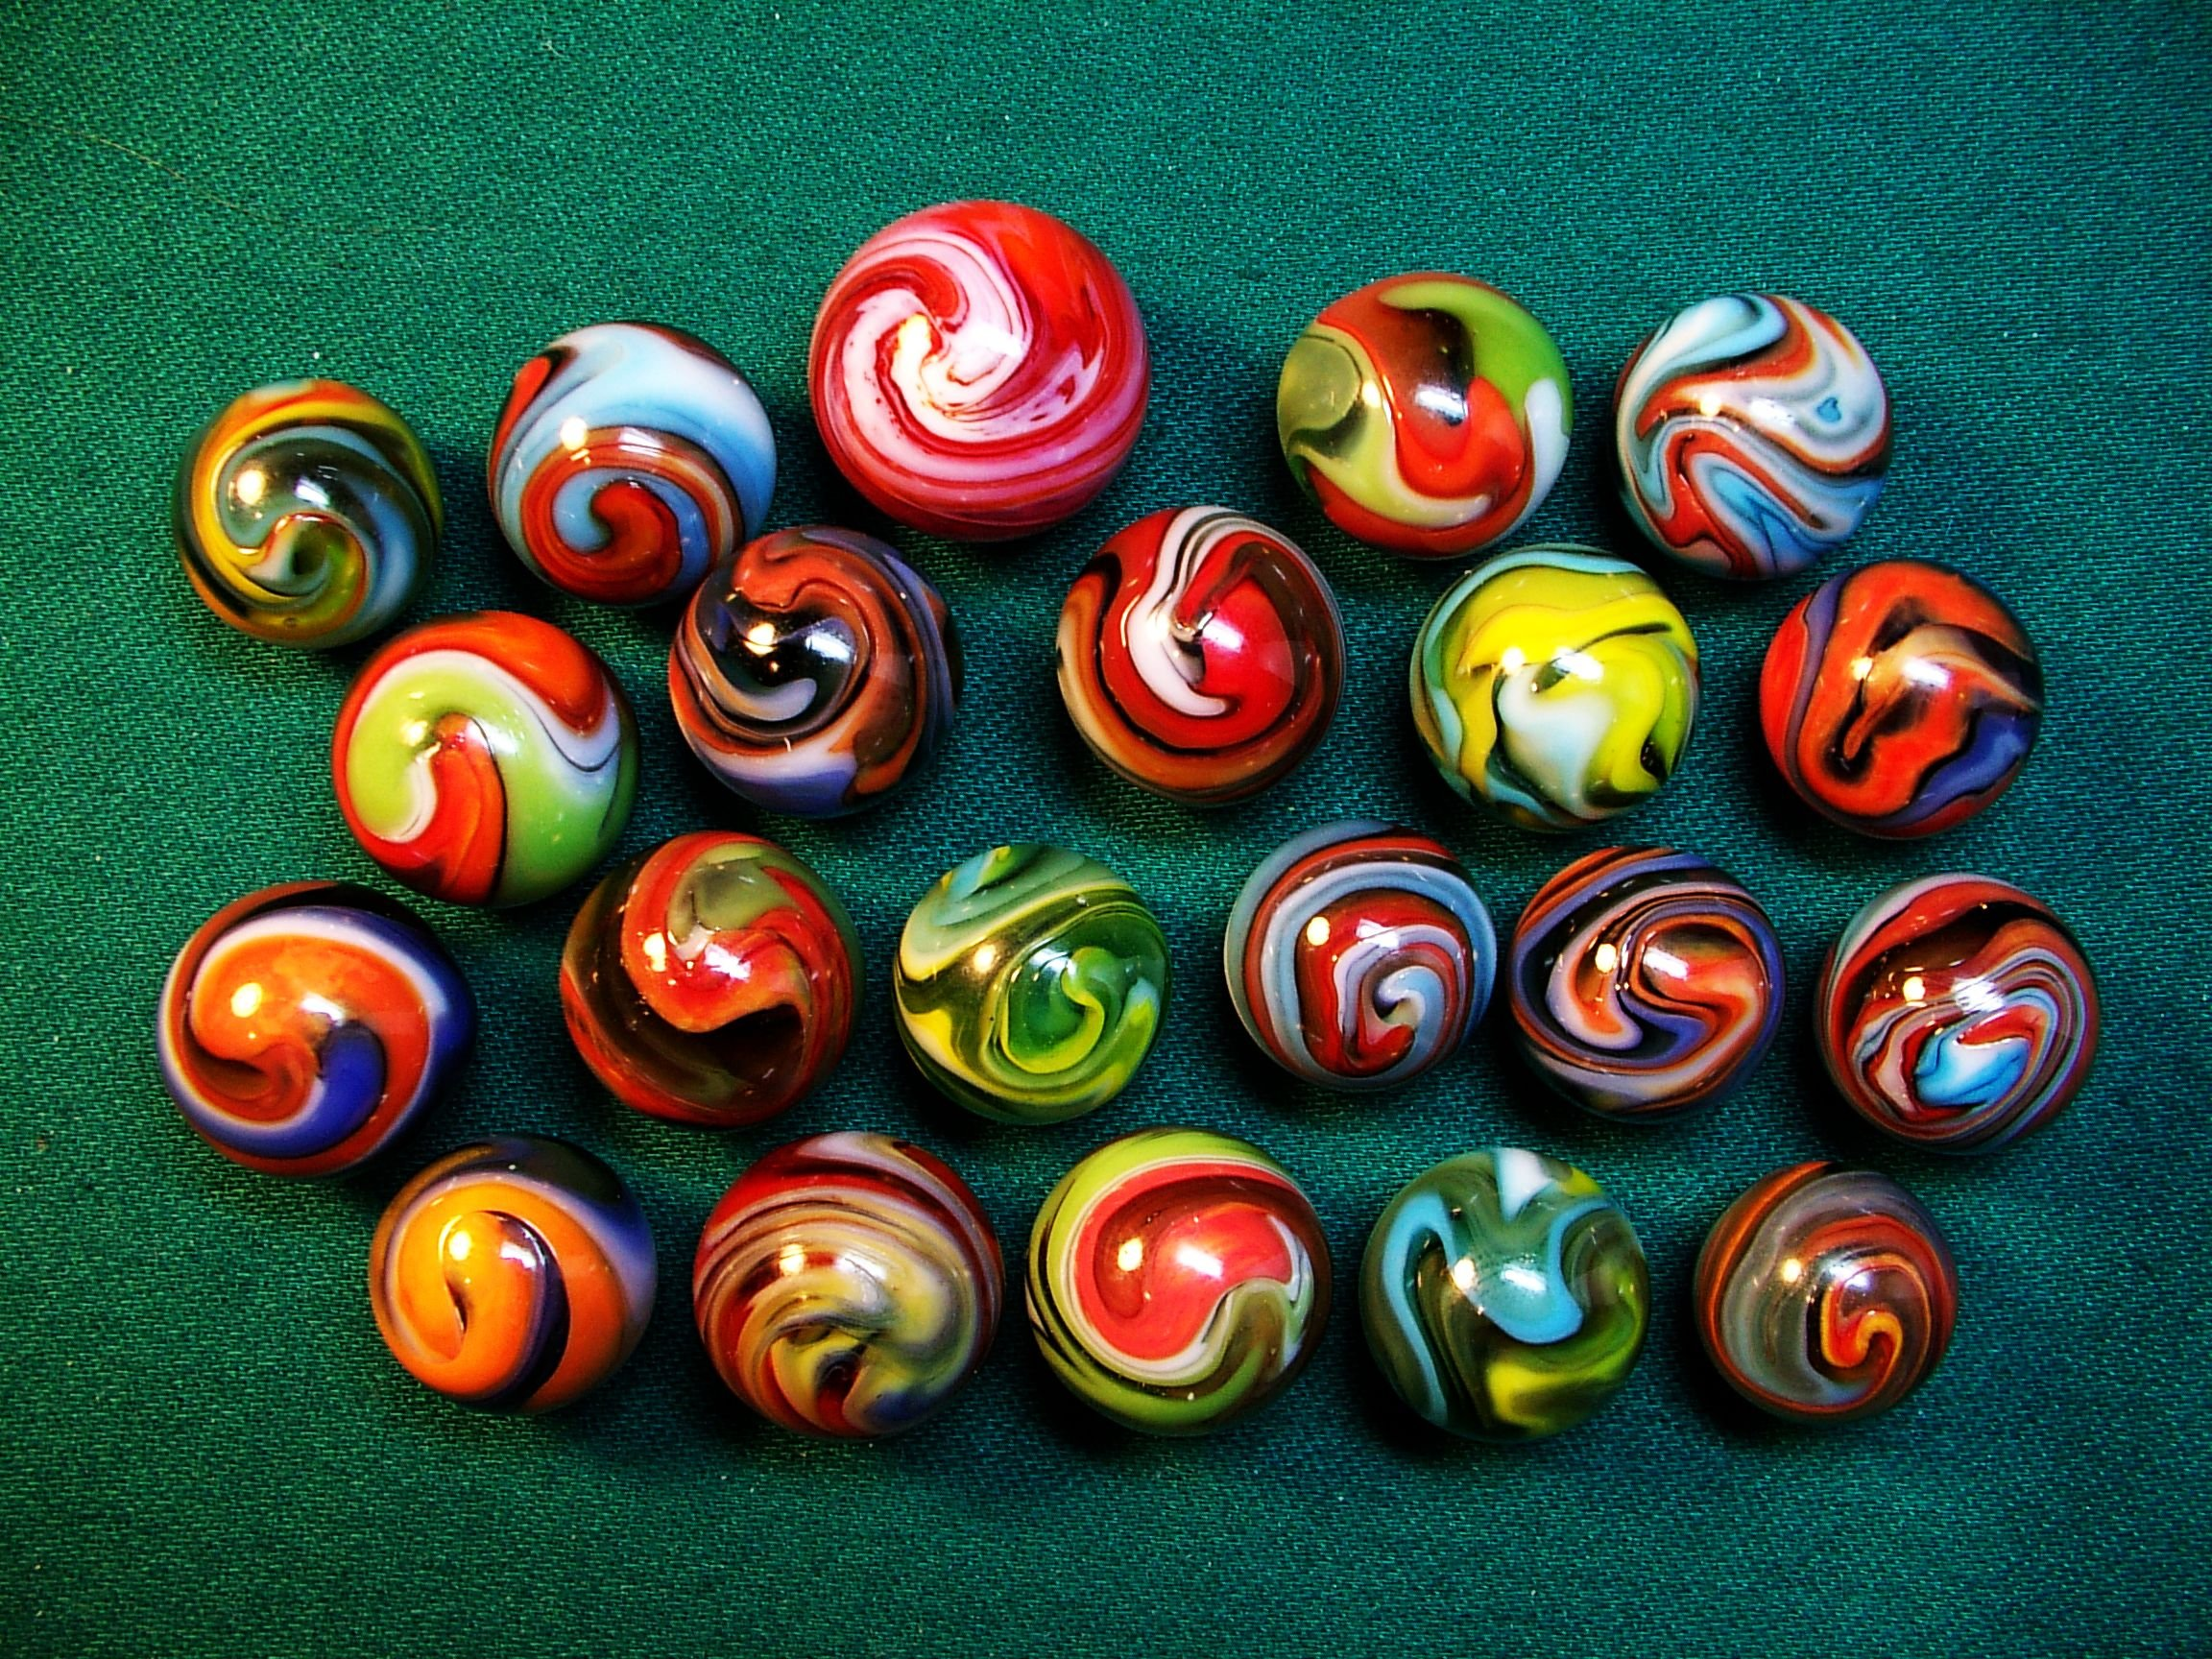 dating antique marbles A collection of small antique archeologists have found marbles in mexico and in some areas of the united states dating land of marbles schroeder's antique.